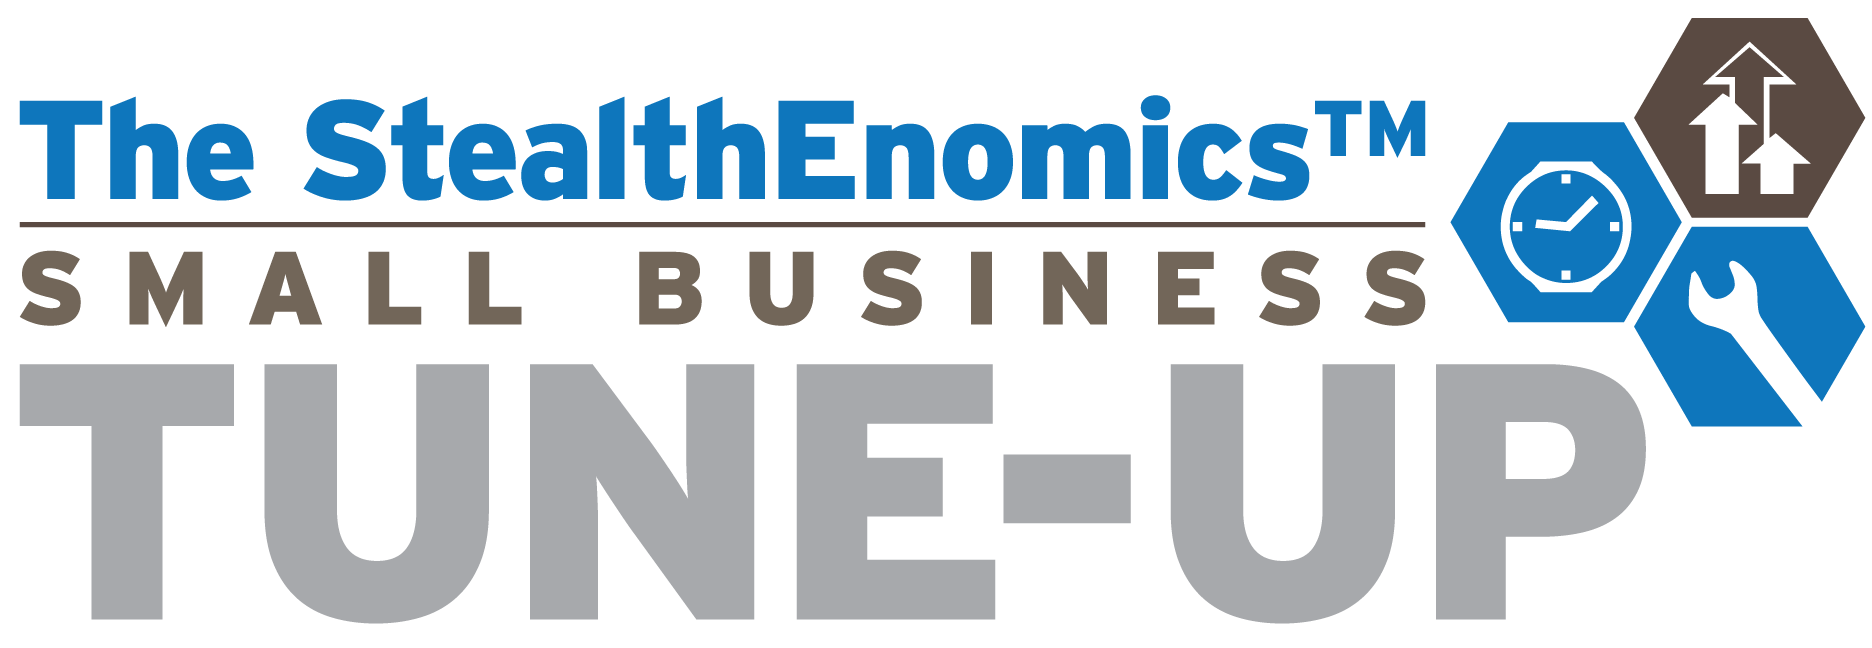 The StealthEnomics Small Business Tune-Up